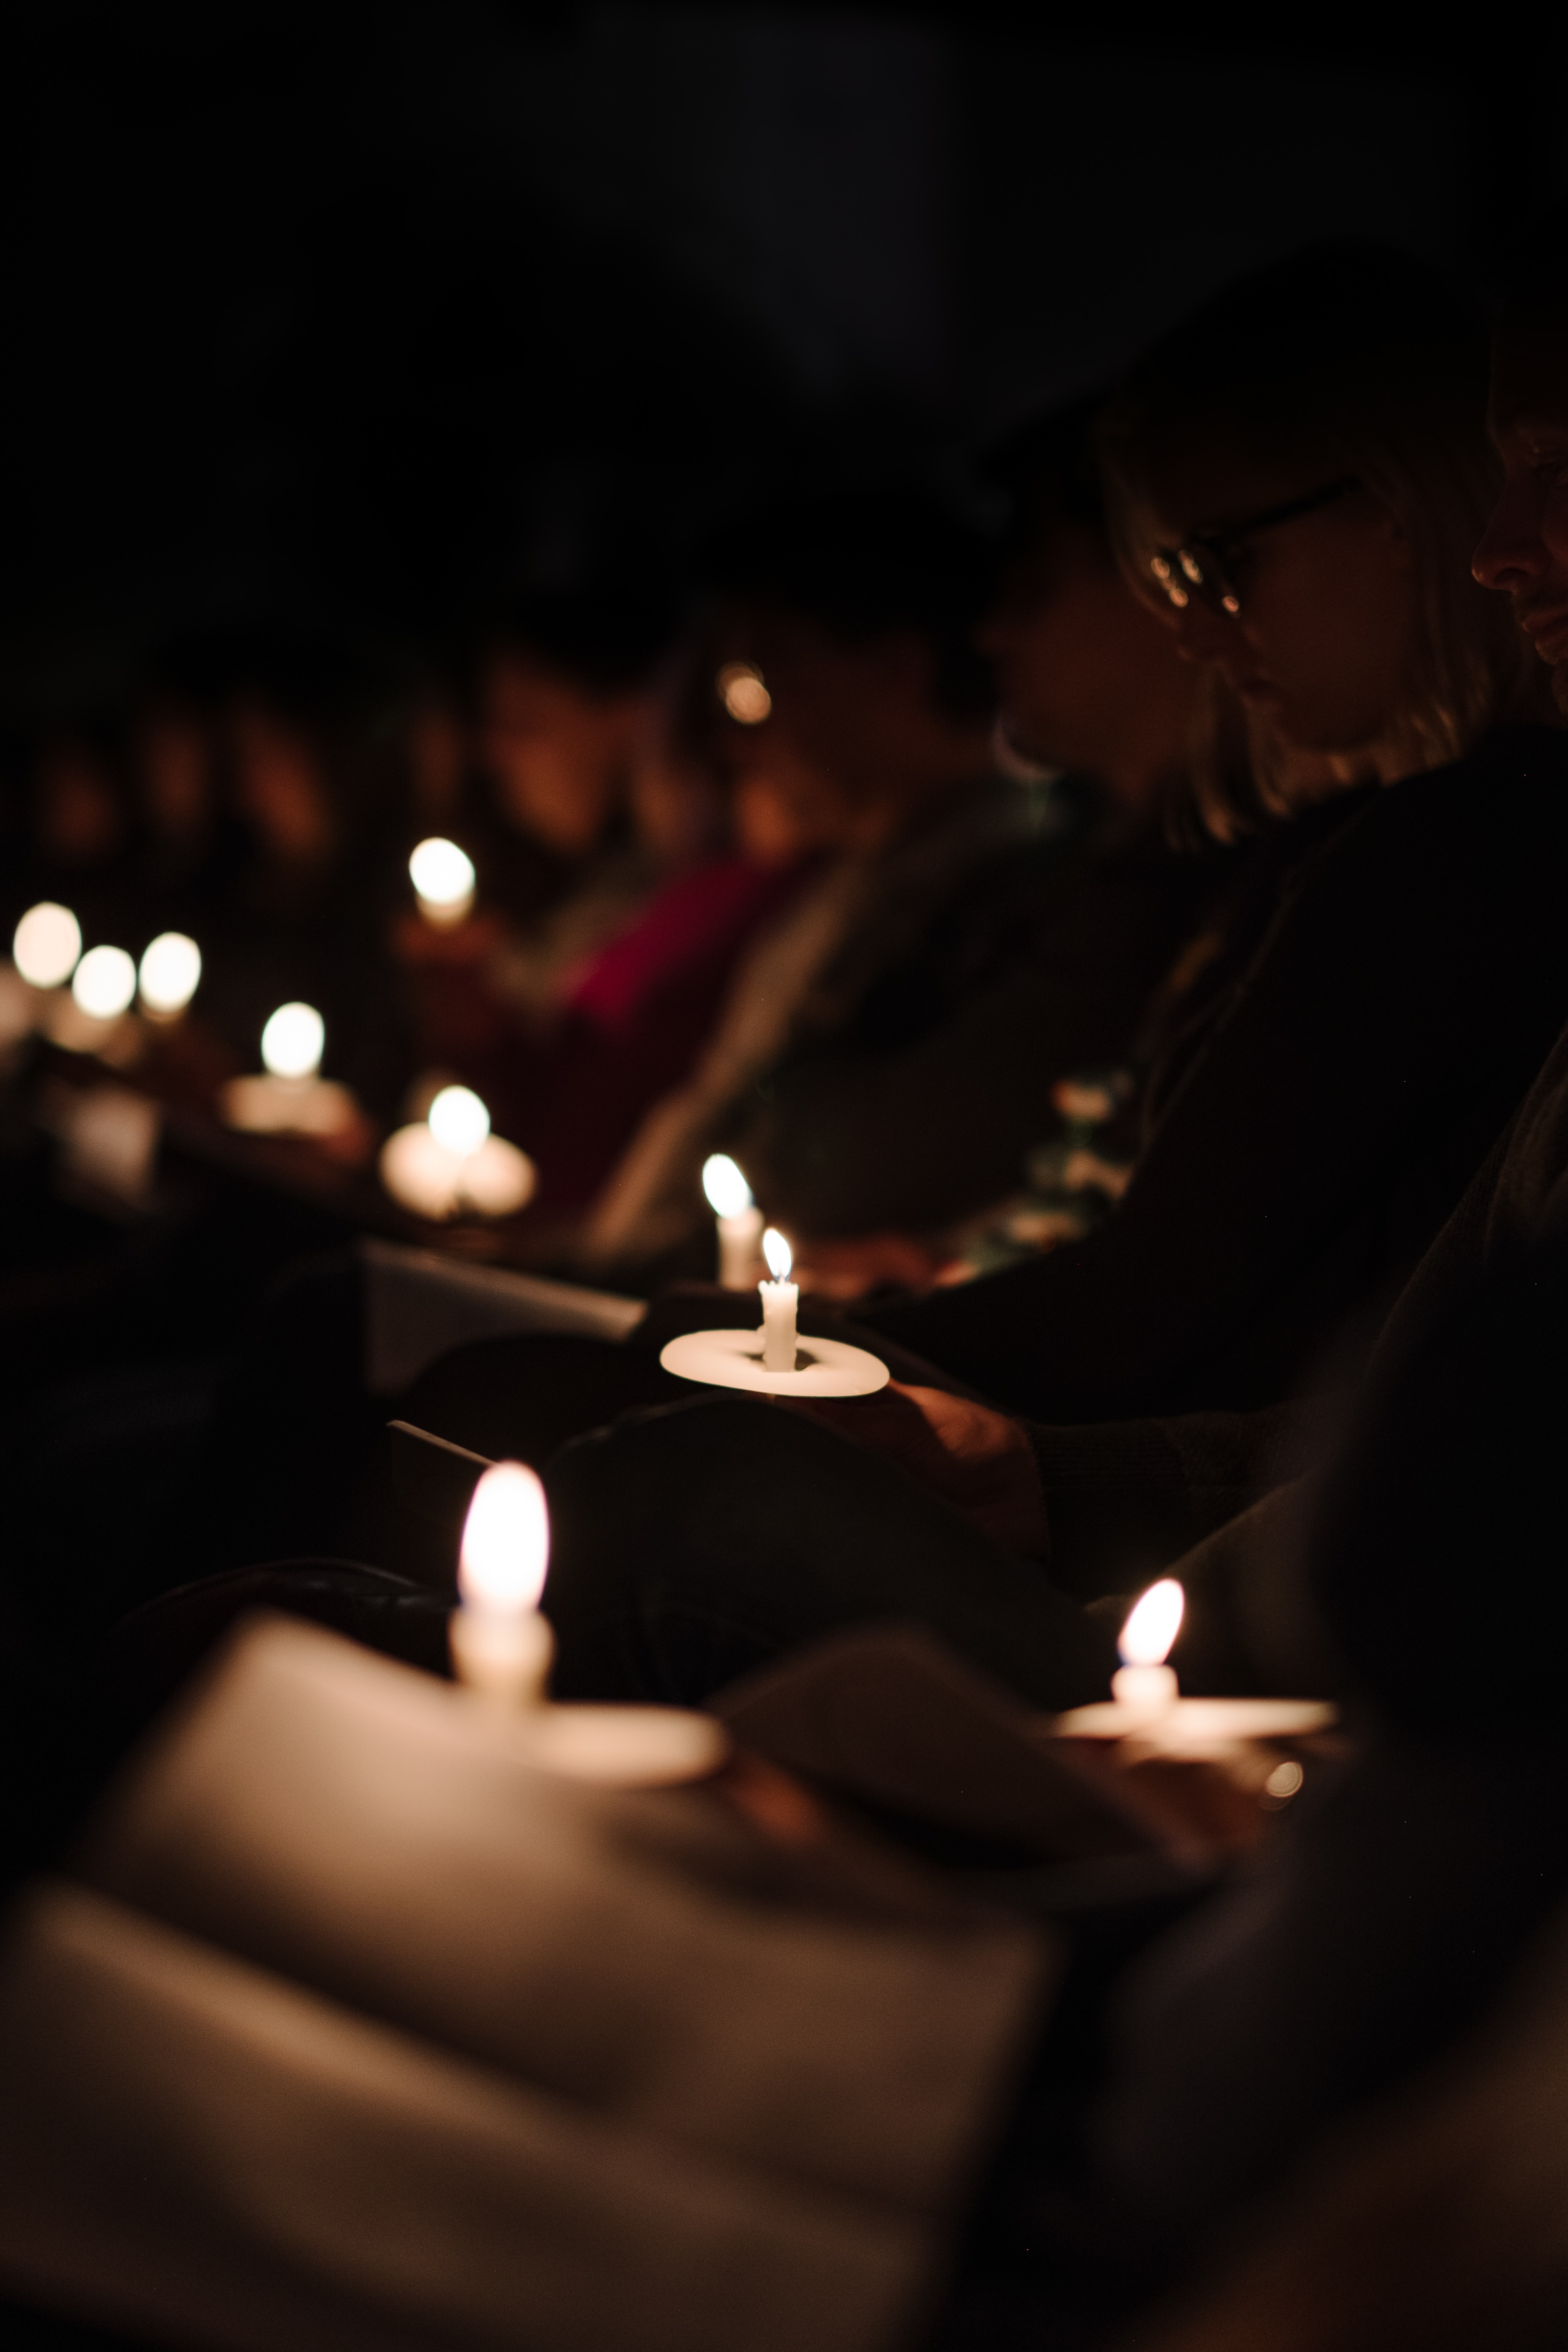 people reading books using only candles to light their view